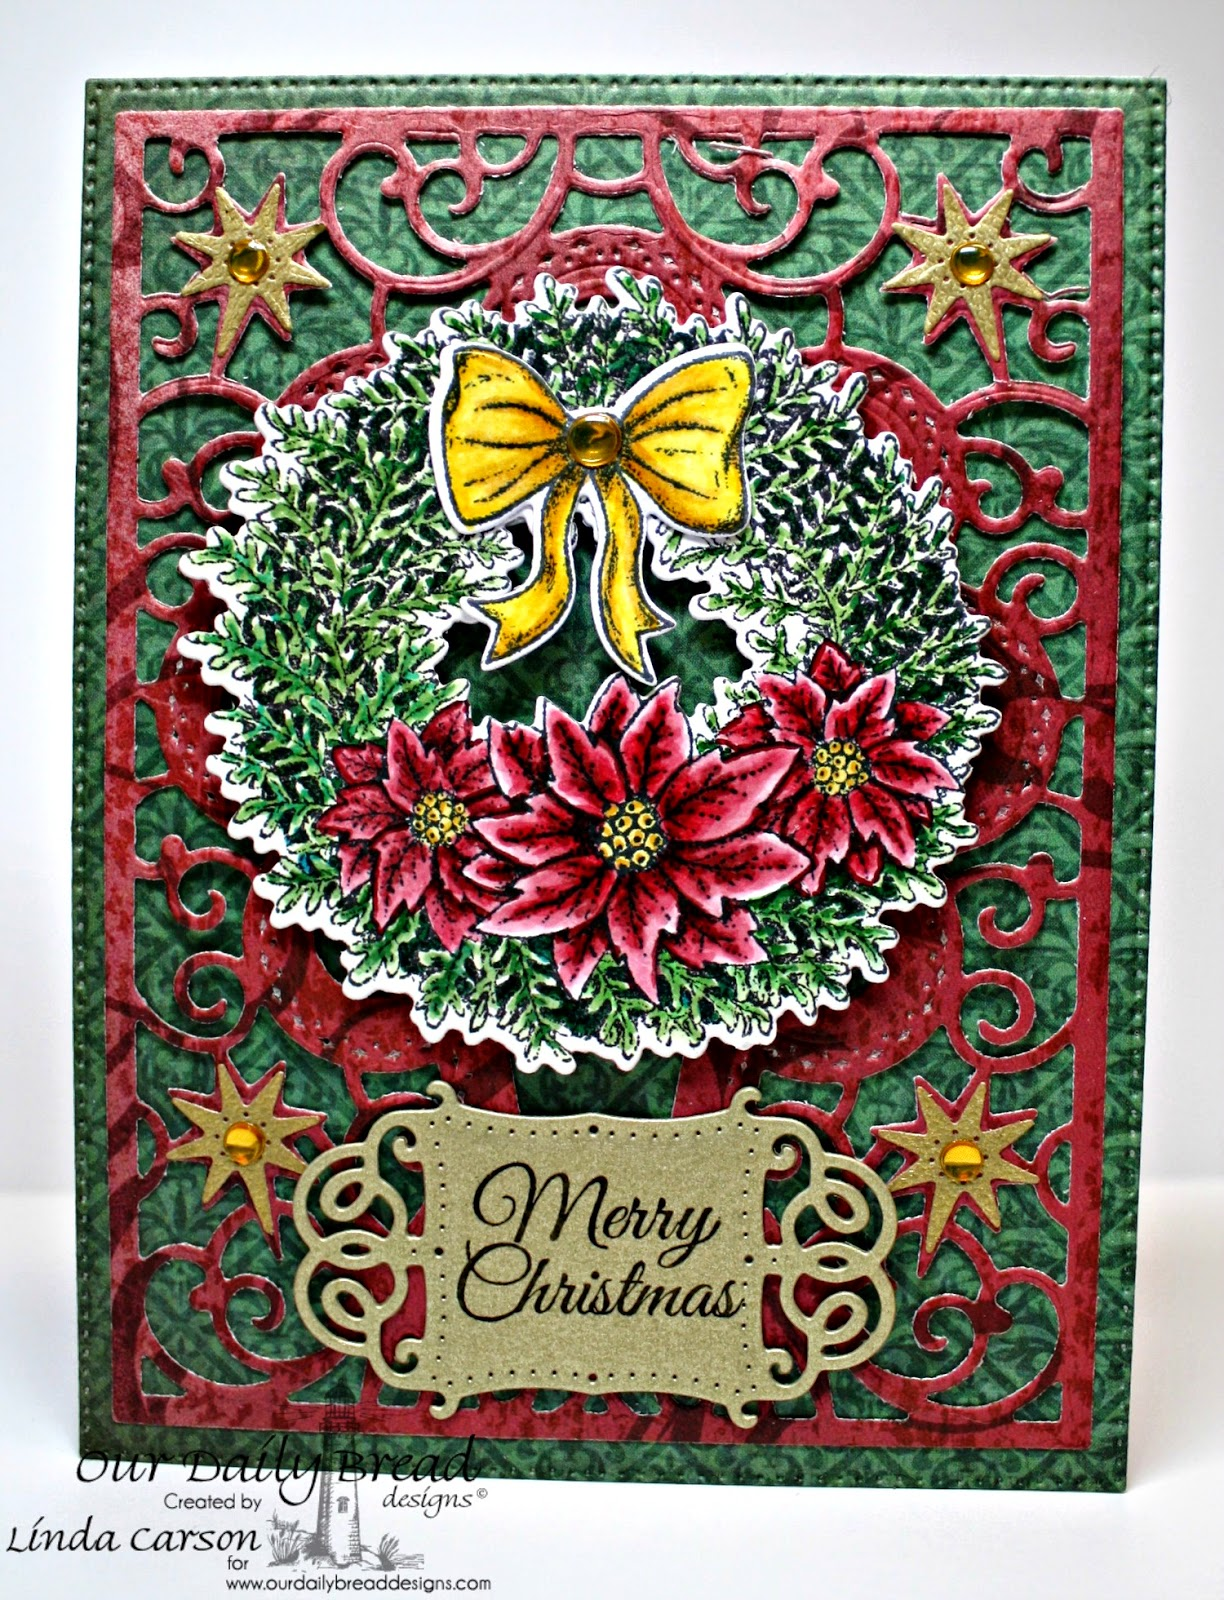 Our Daily Bread Designs, Splendorous Stars die, Vintage Flourish Pattern die,  Poinsettia Wreath die, Flourished Star Pattern die, Poinsettia Wreath, Christmas Collection Paper 2013, designer Linda Carson